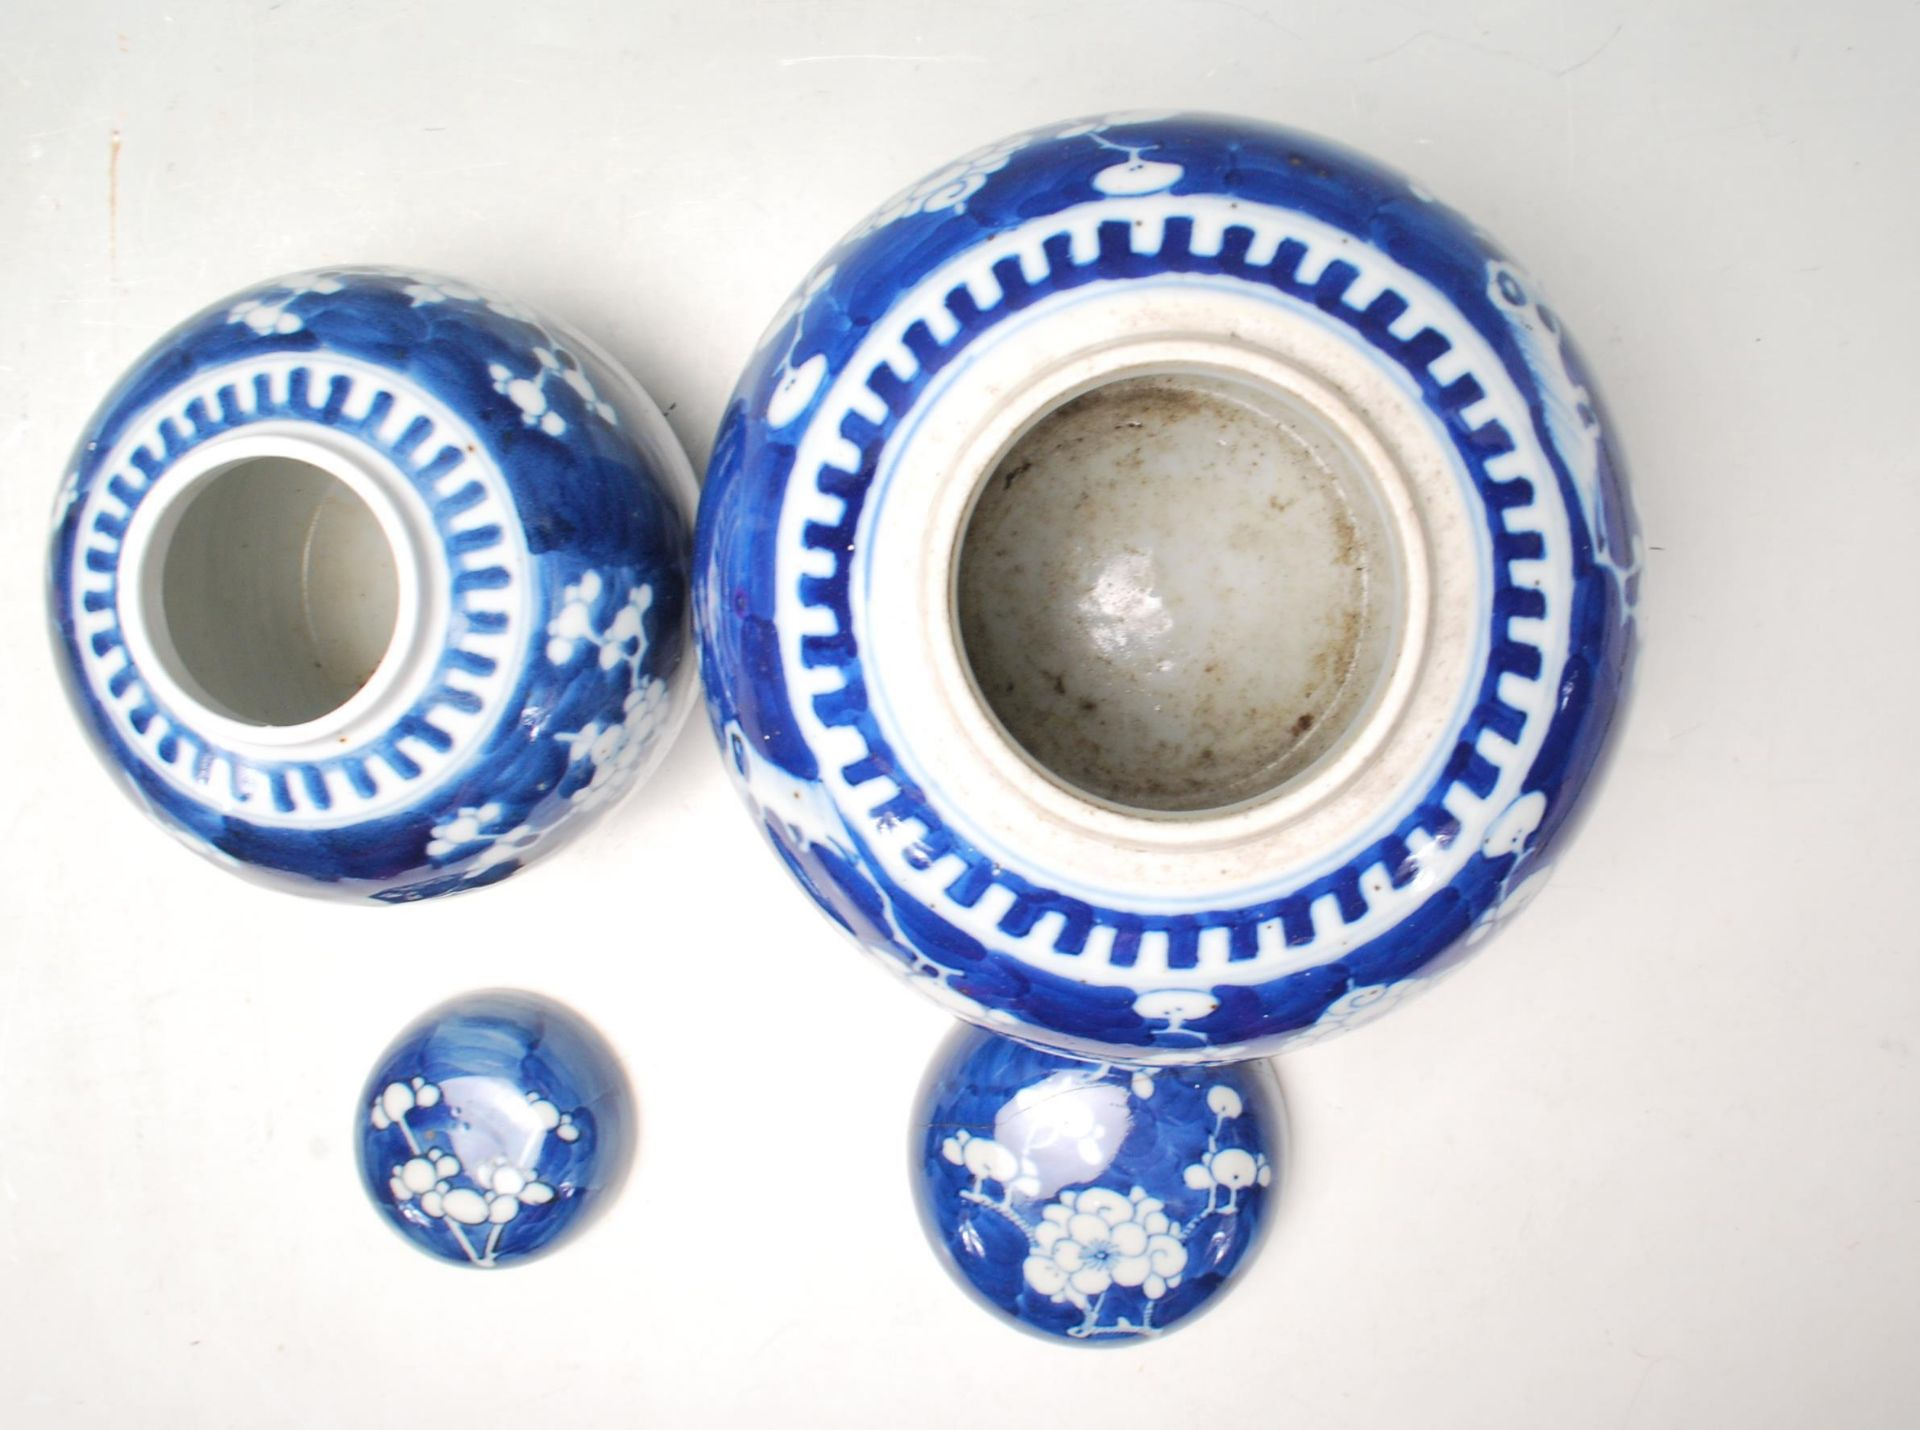 TWO ANTIQUE EARLY 20TH CENTURY CHINESE BLUE AND WHITE GINGER AND JARS - Image 3 of 8